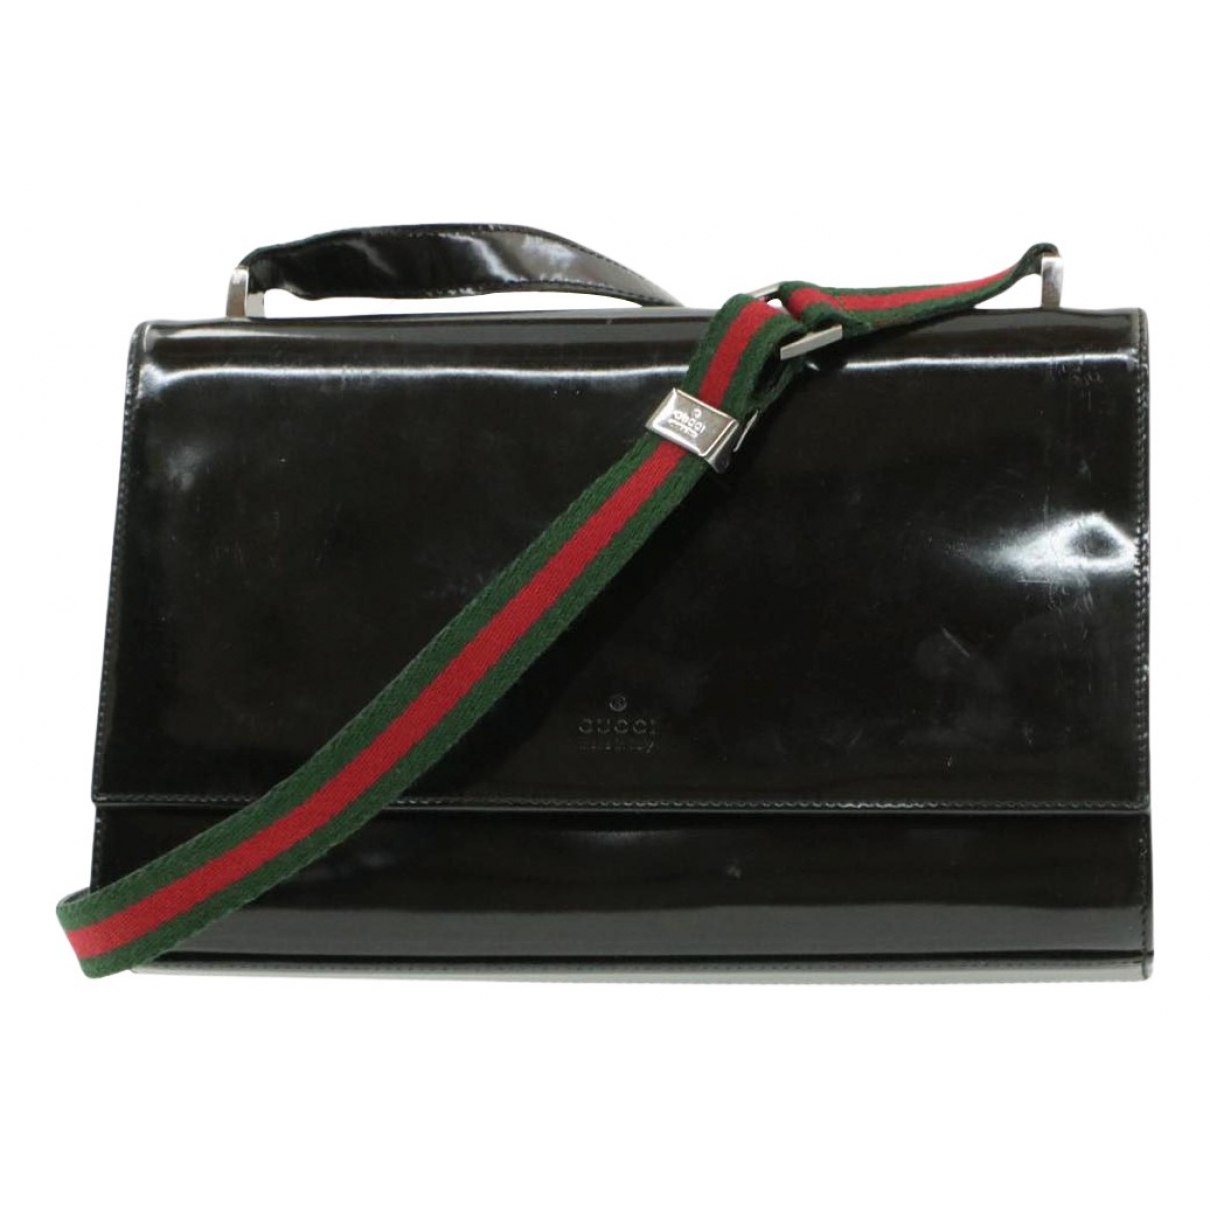 Gucci N Black Patent leather Clutch bag for Women N